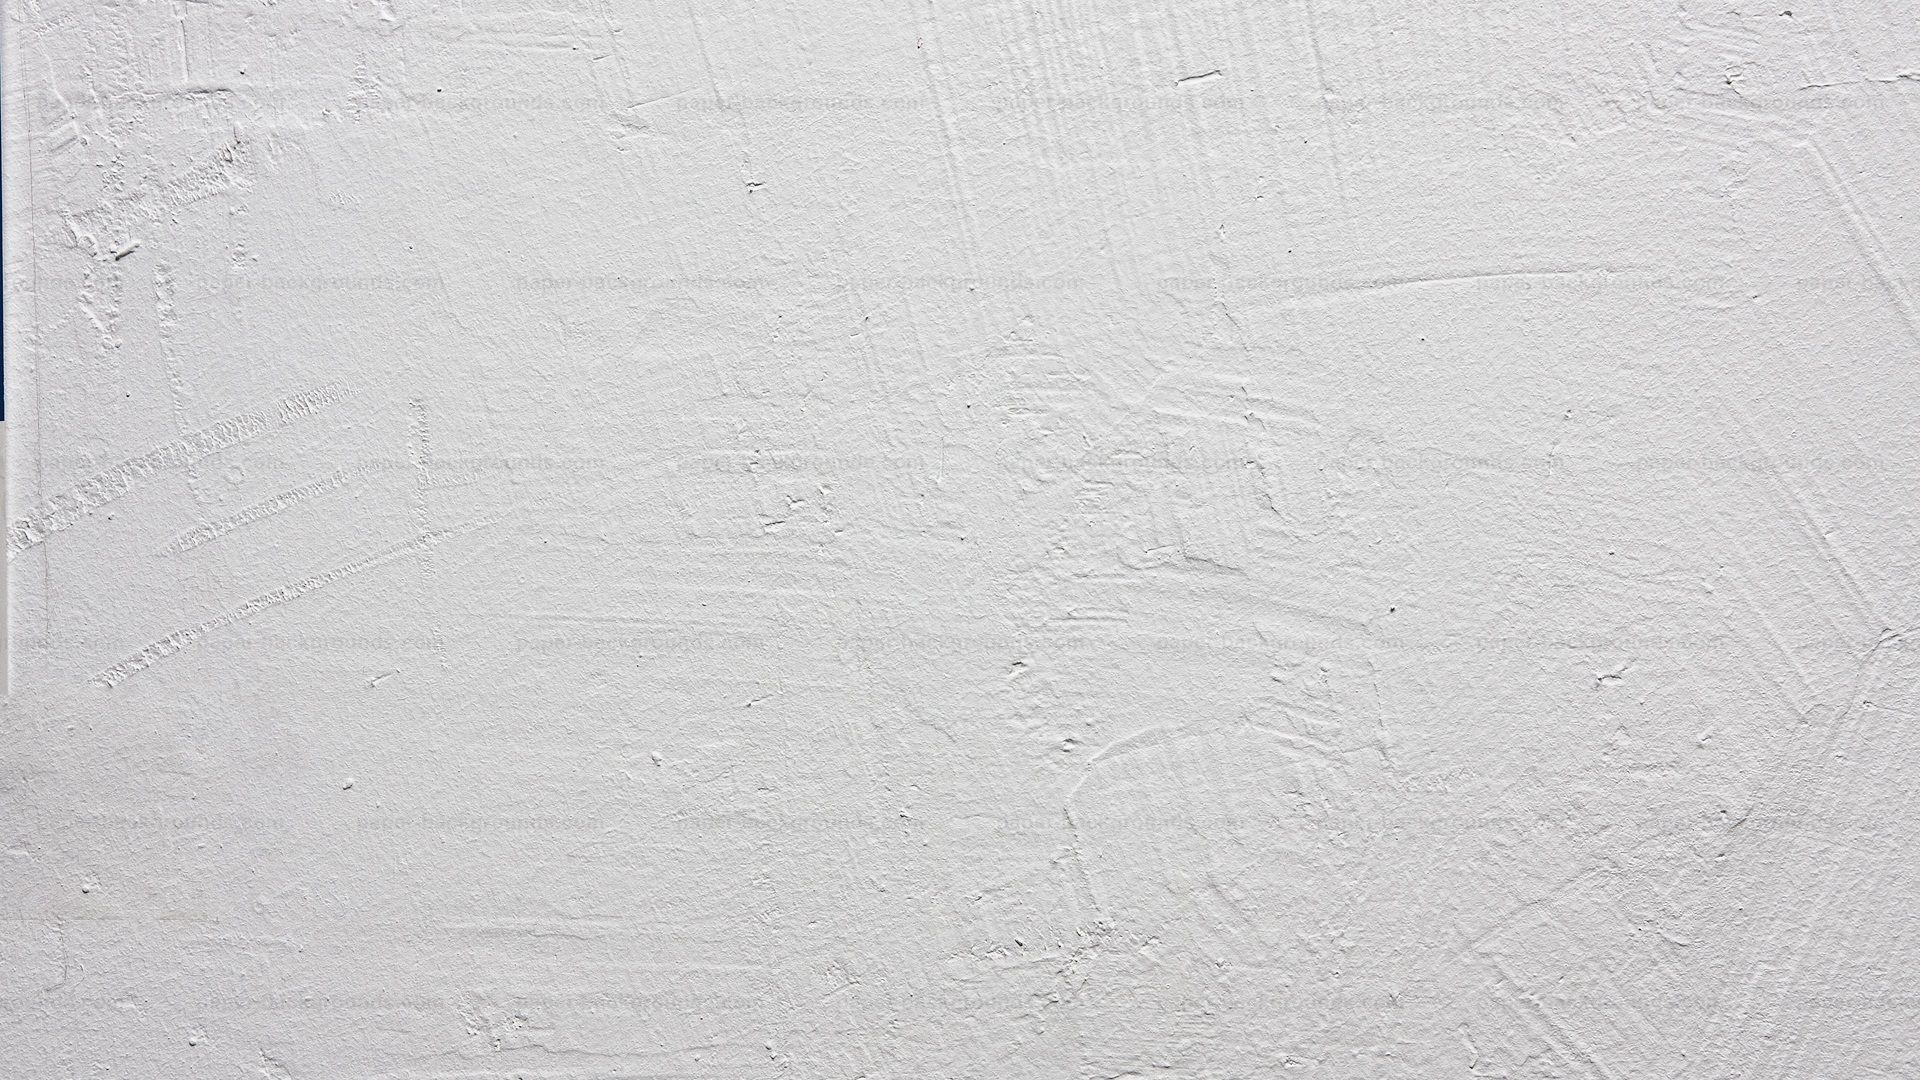 White Concrete Wall Texture Background Hd Concrete Wall Texture Textured Walls Concrete Texture